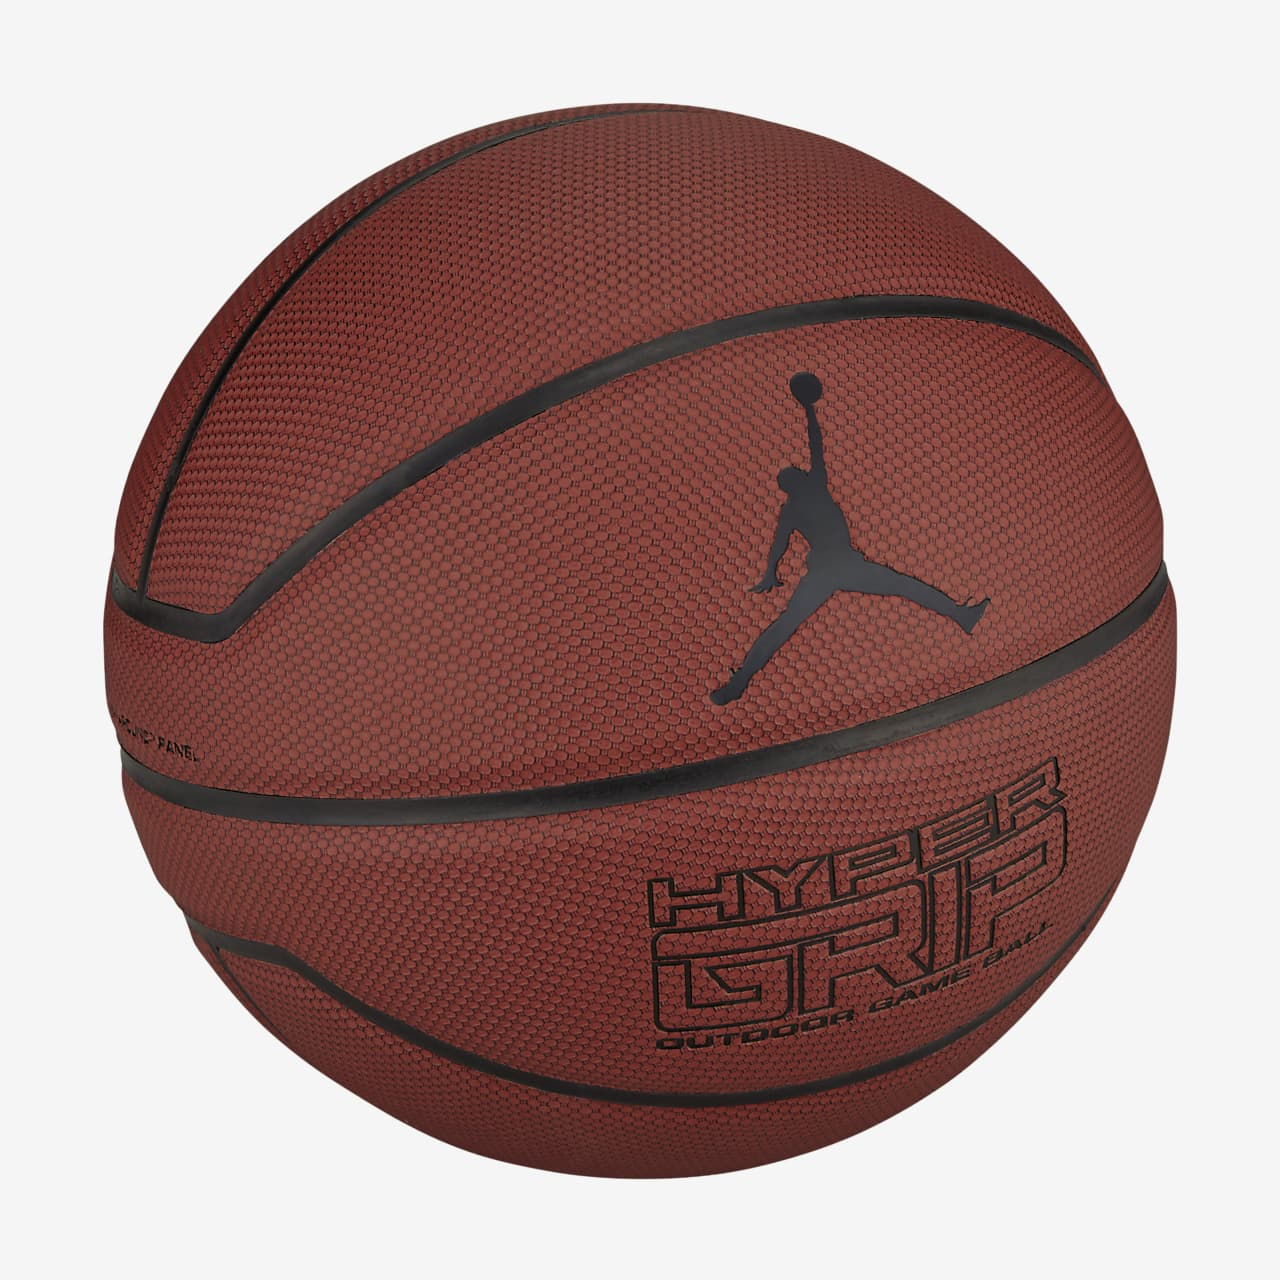 Ballon de basketball Jordan HyperGrip 4P